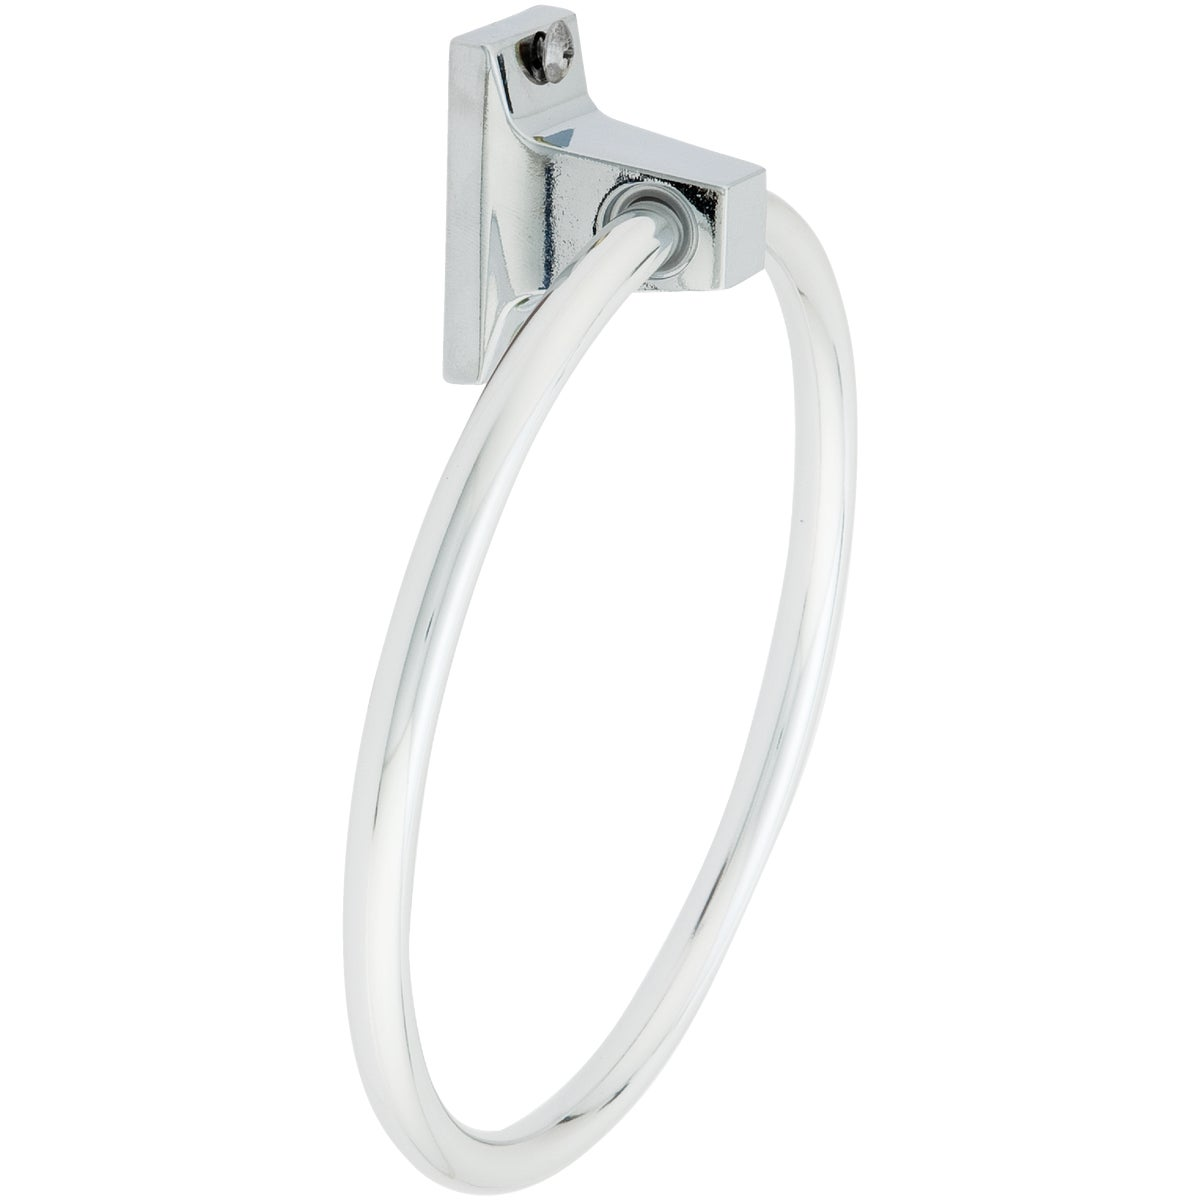 CHROME TOWEL RING - 408801 by Do it Best